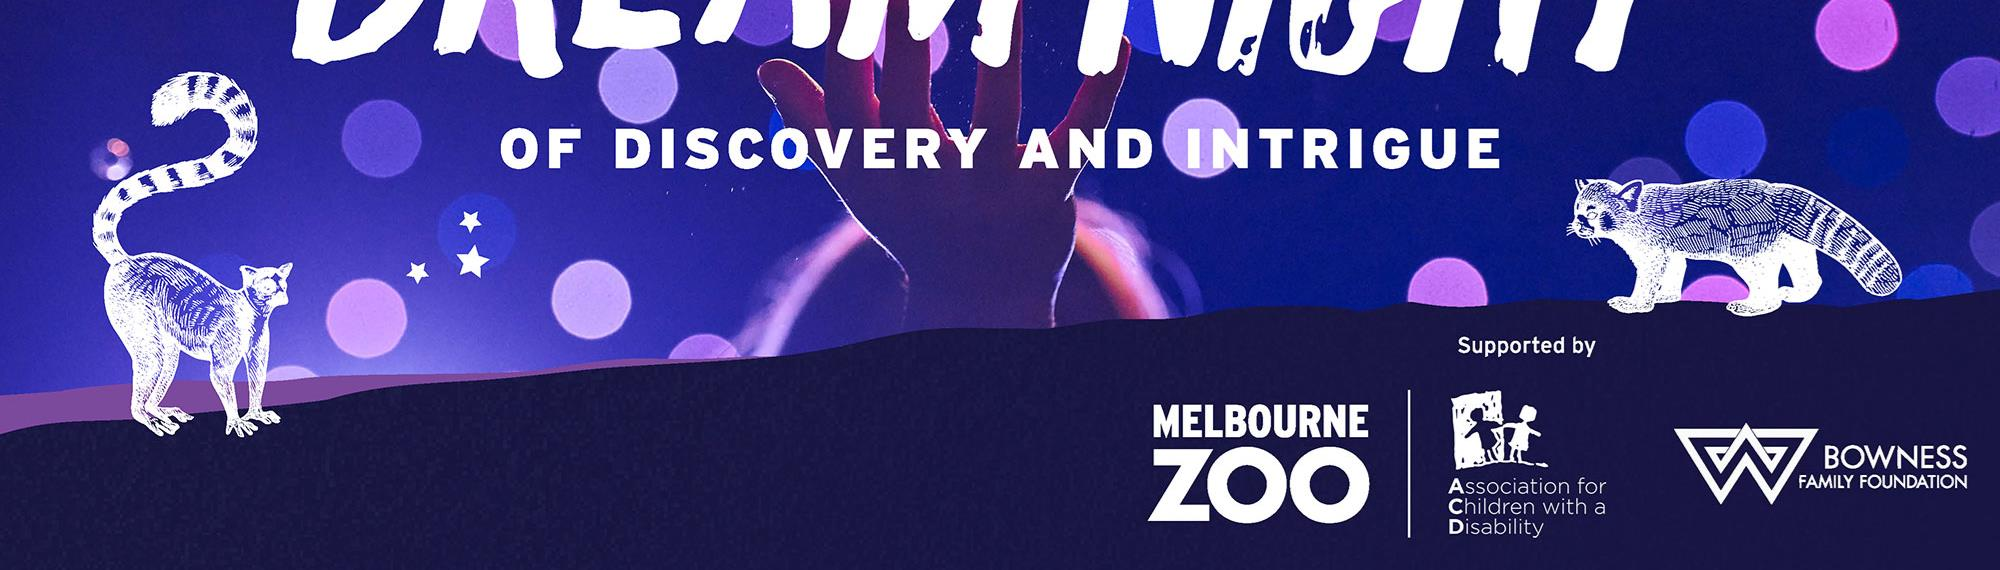 Dream Night campaign banner. A magical night of discovery and intrigue on 12th October at Melbourne Zoo.